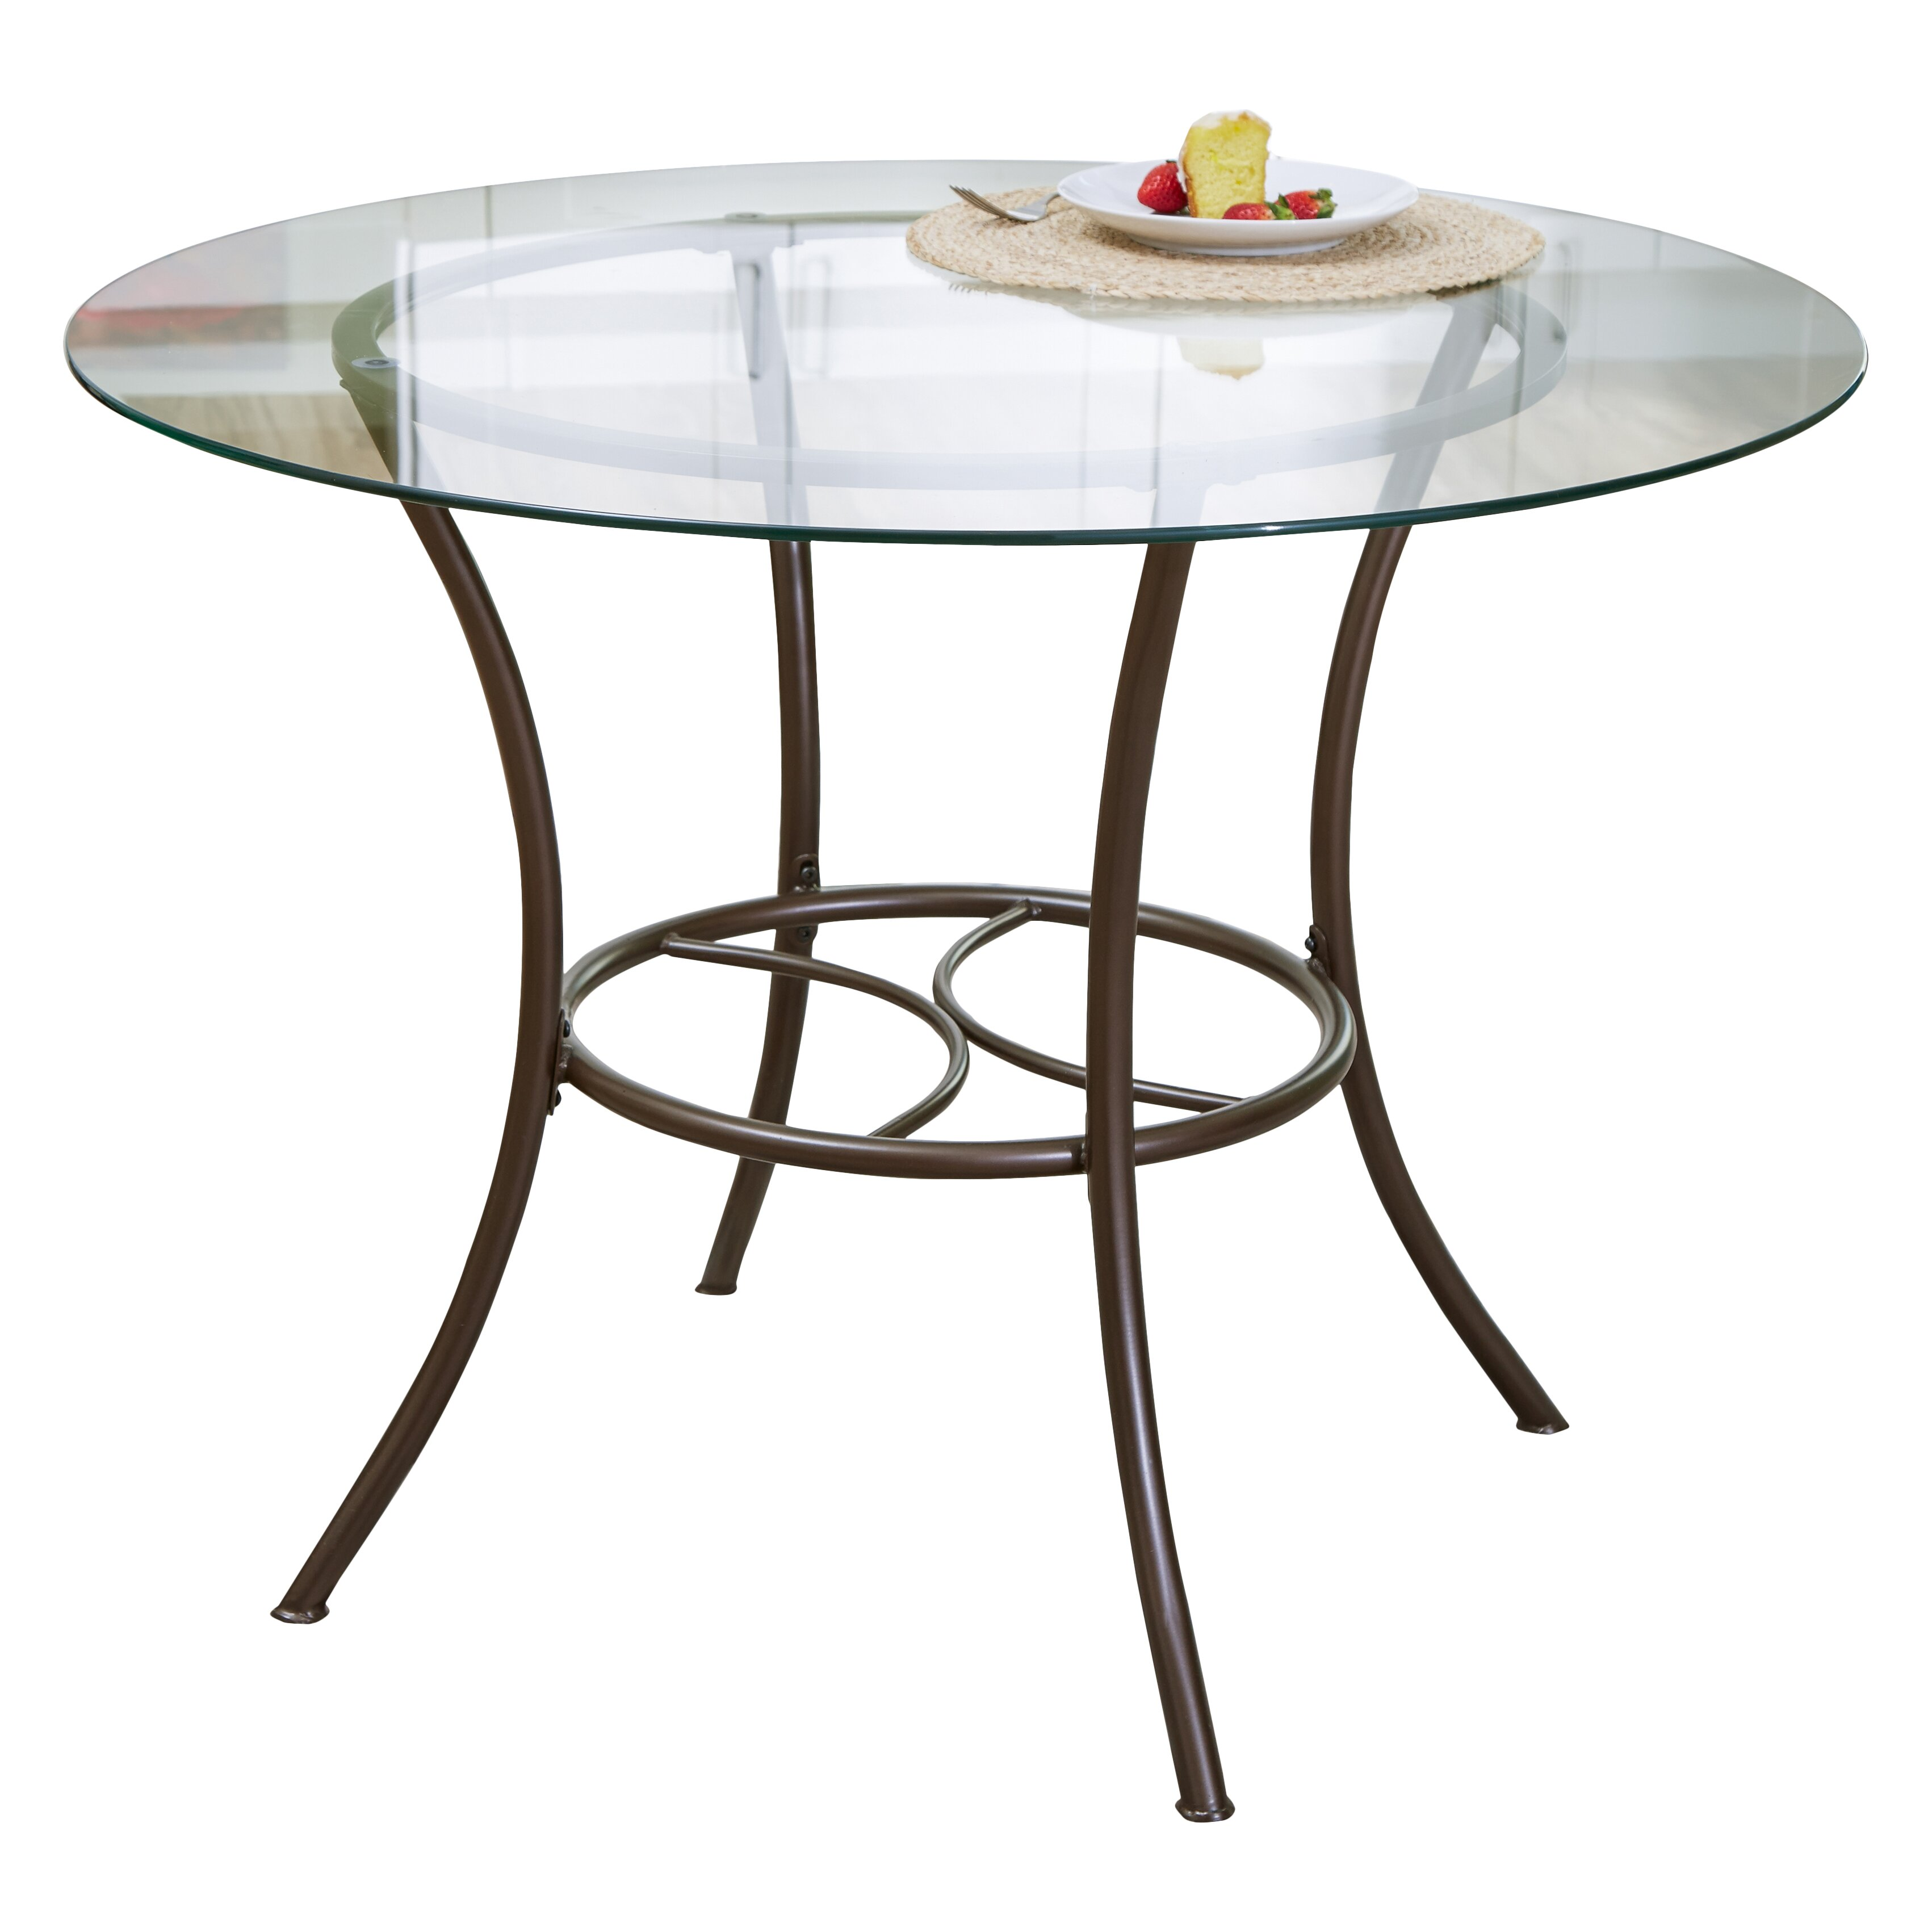 Andover mills jefferson dining table reviews for Wayfair dining table